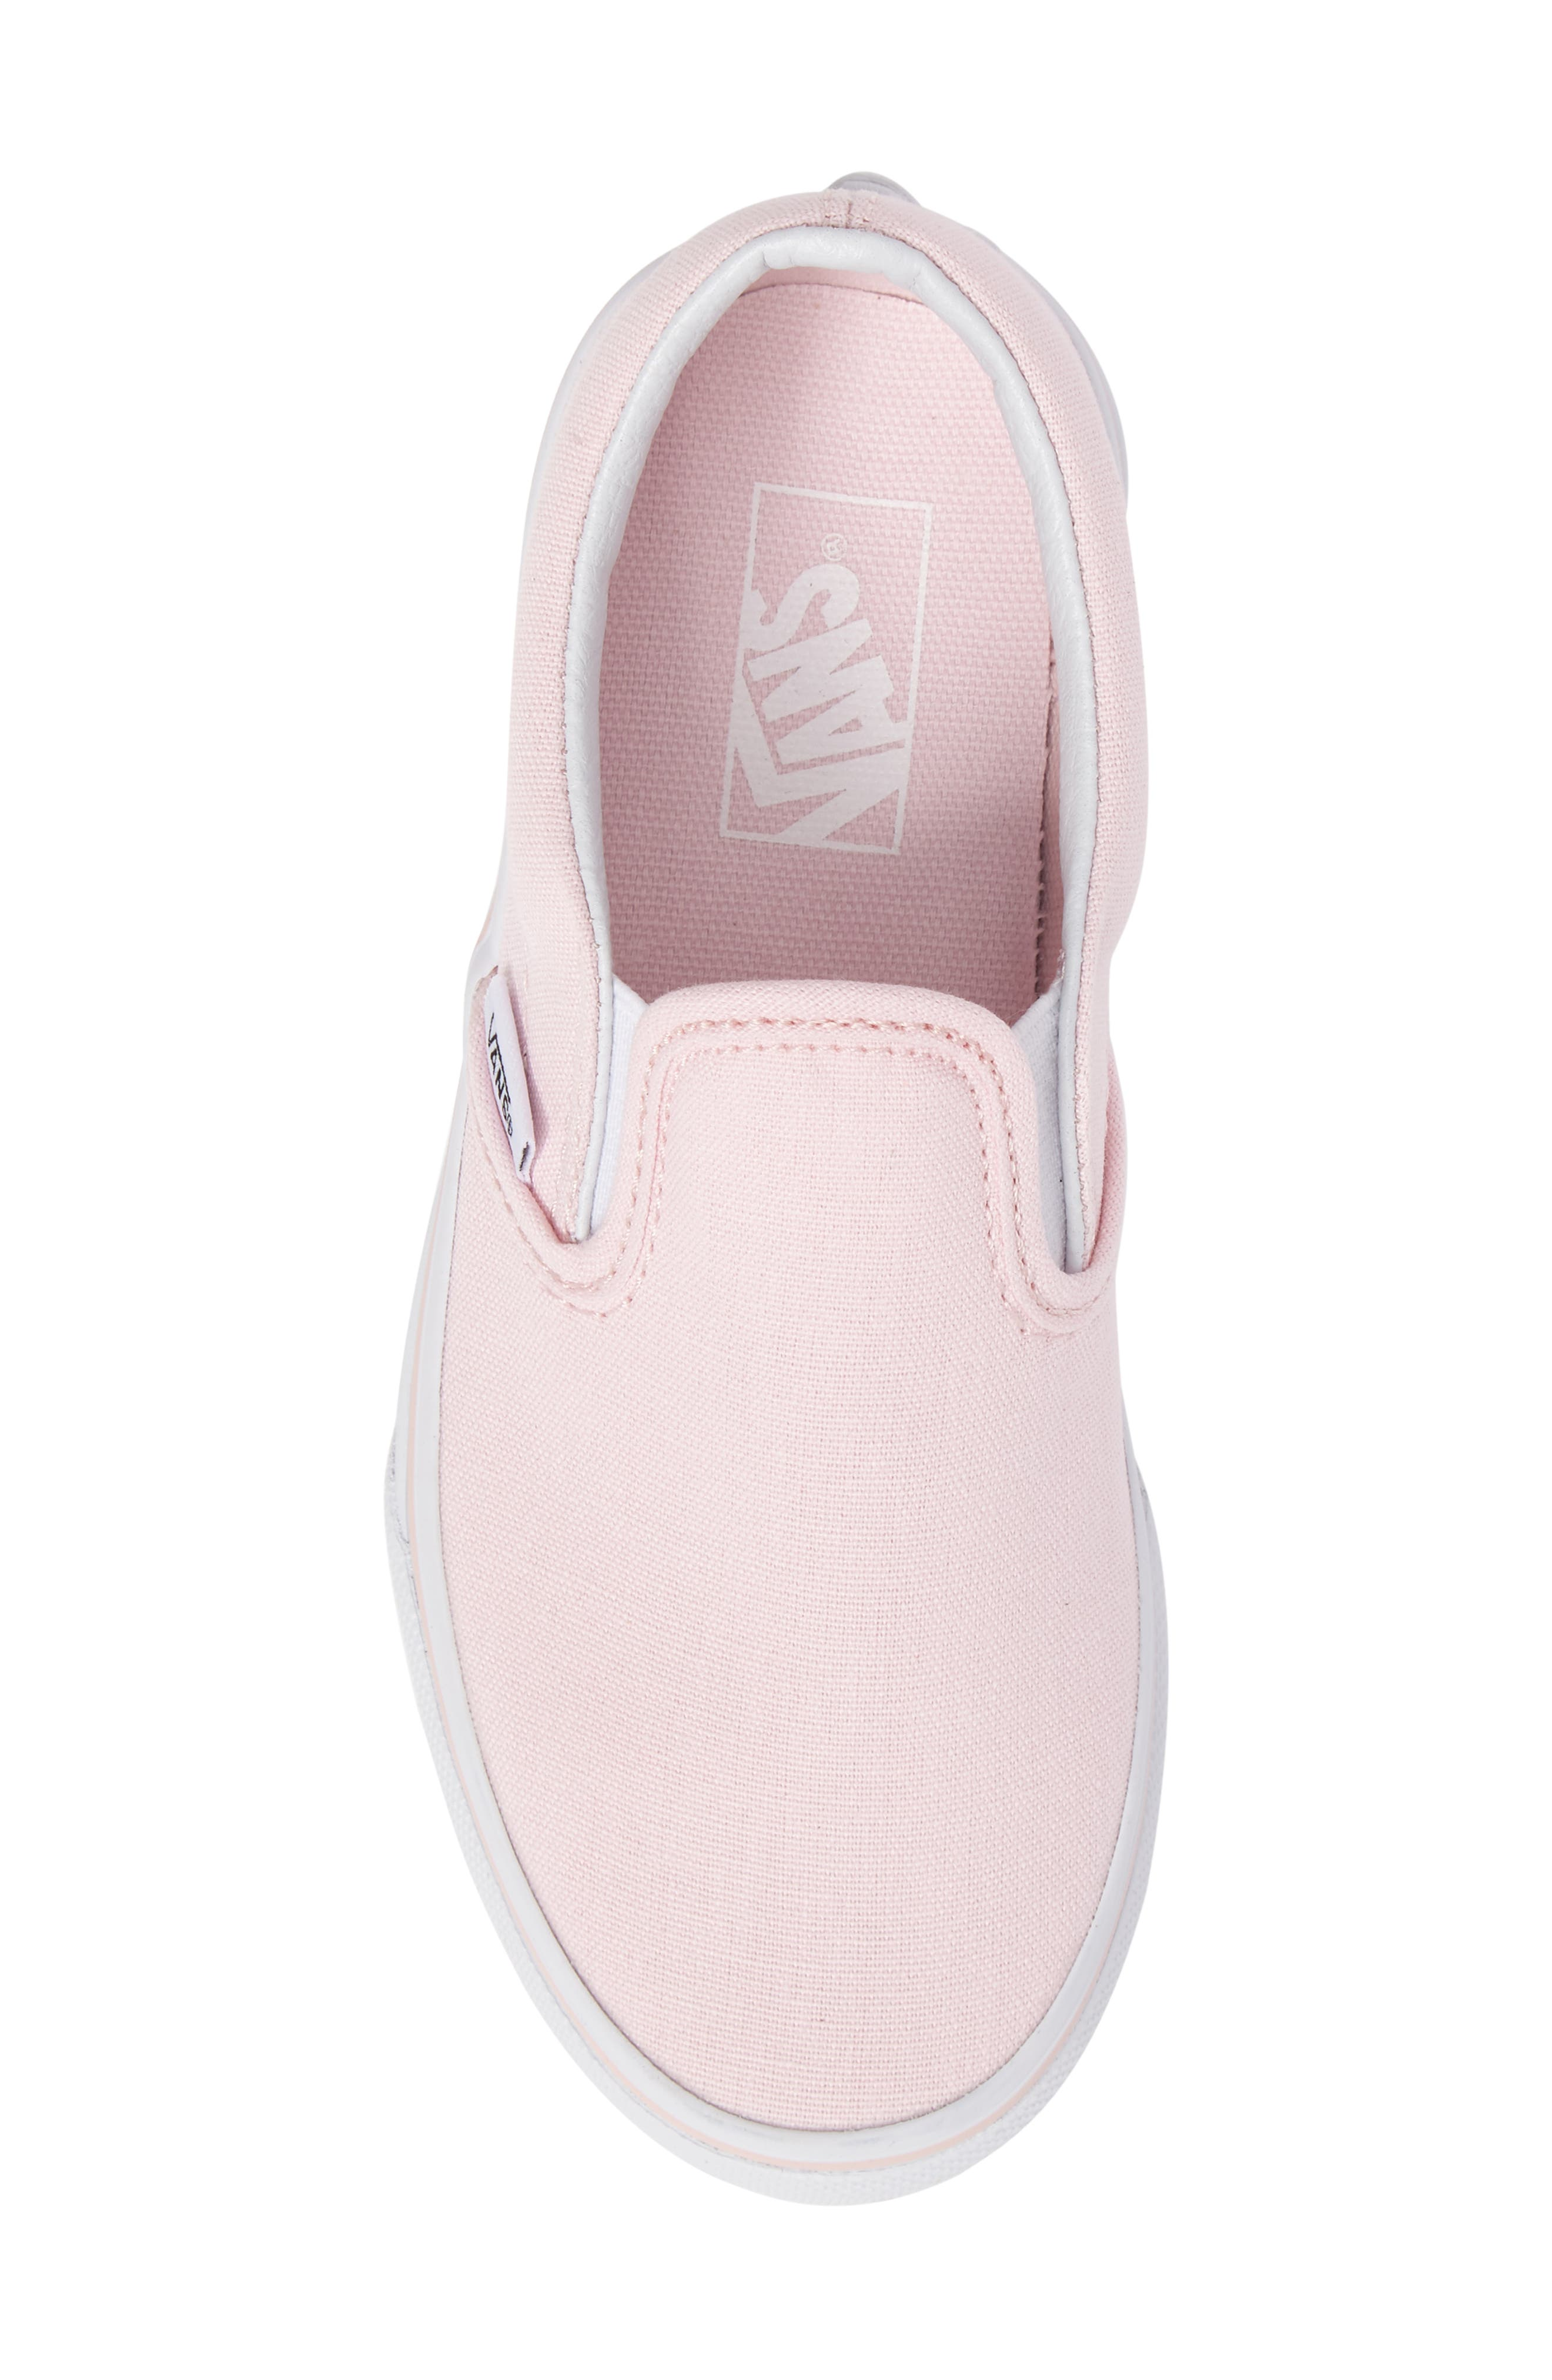 Classic Slip-On Sneaker,                             Alternate thumbnail 5, color,                             Ballerina/ True White